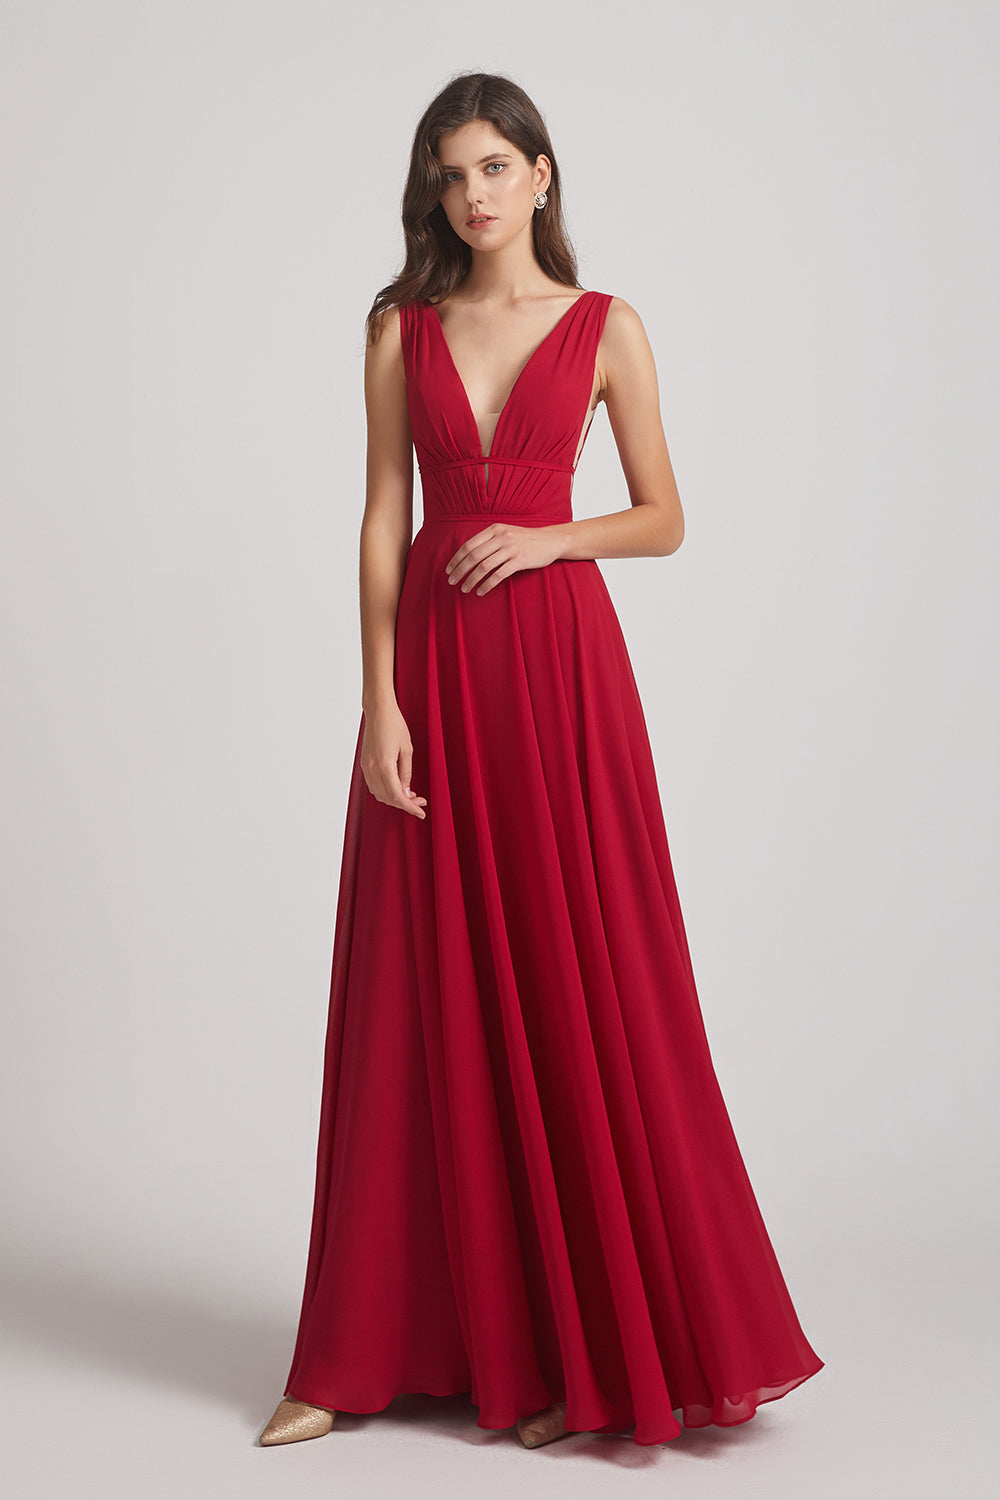 strappy chiffon maids of honor dress